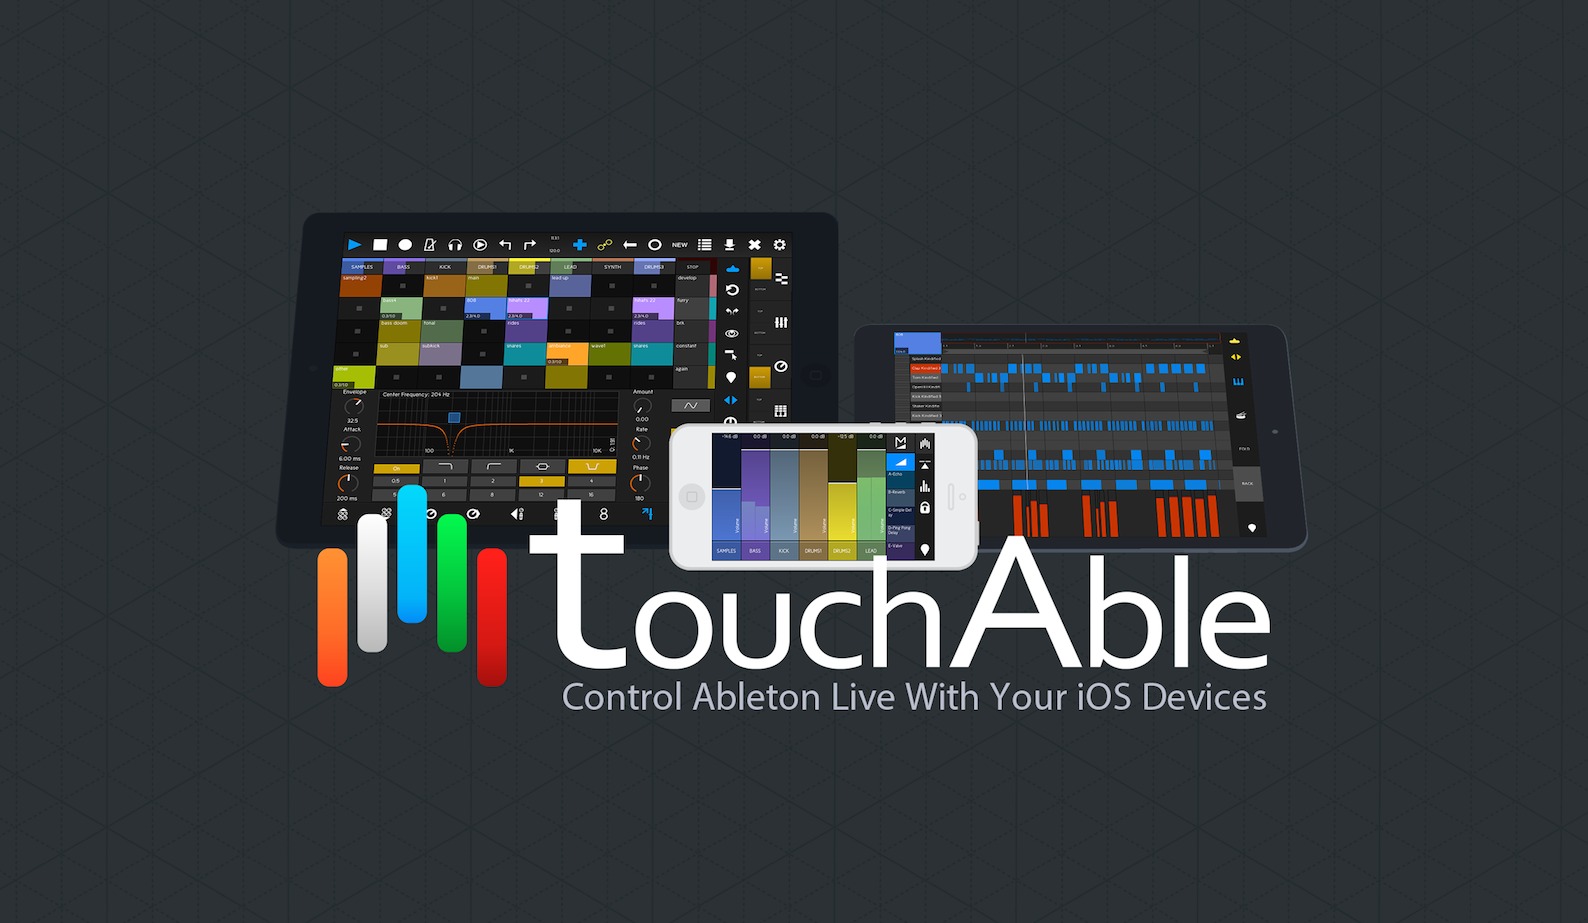 Touchable 3 Ableton Live iPad Controller | iPad Music Apps